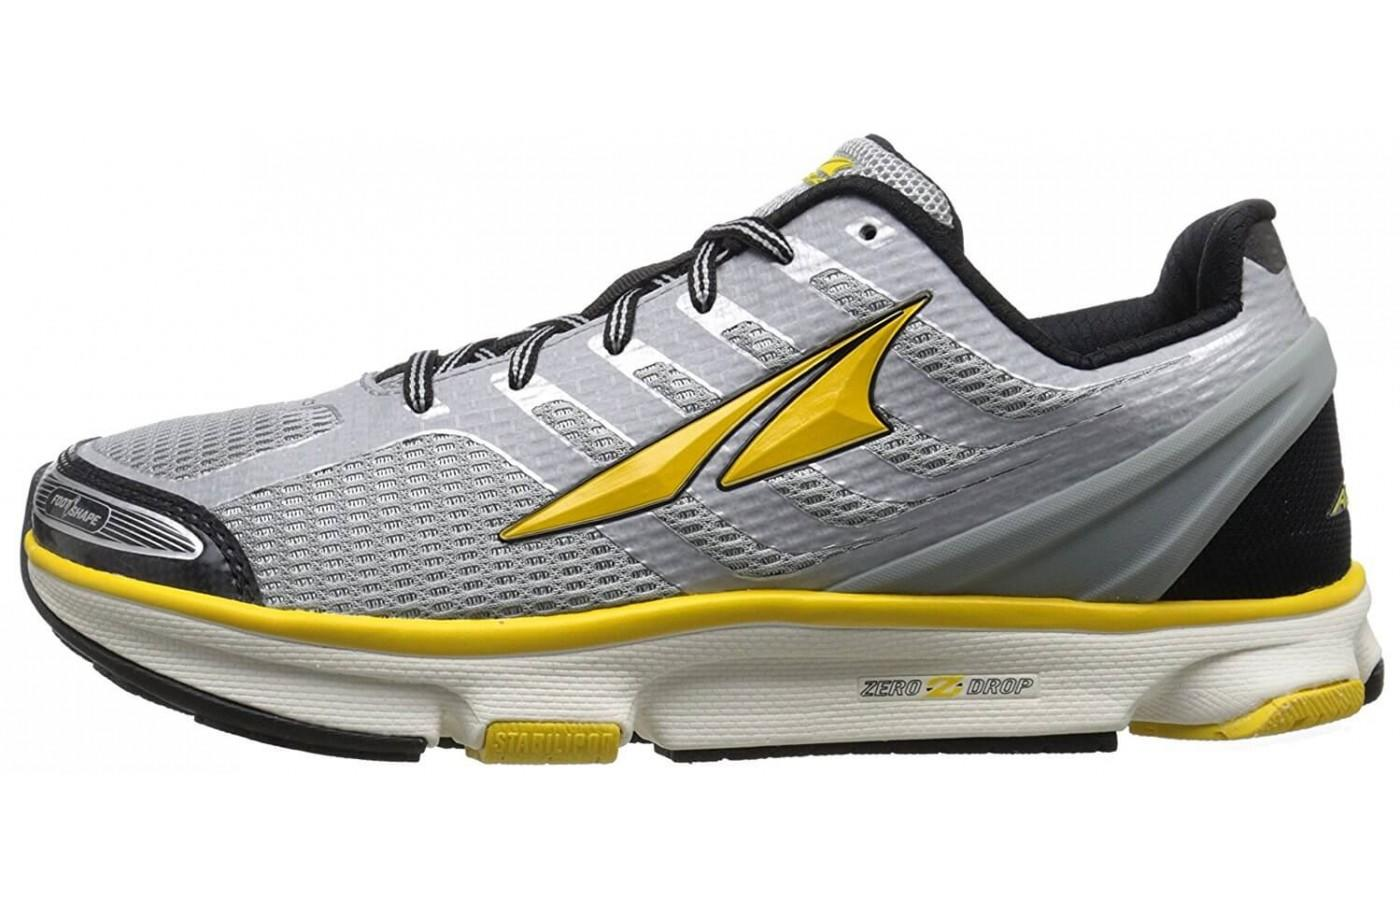 Altra Provision 2.5 has simple, yet pleasant stylings